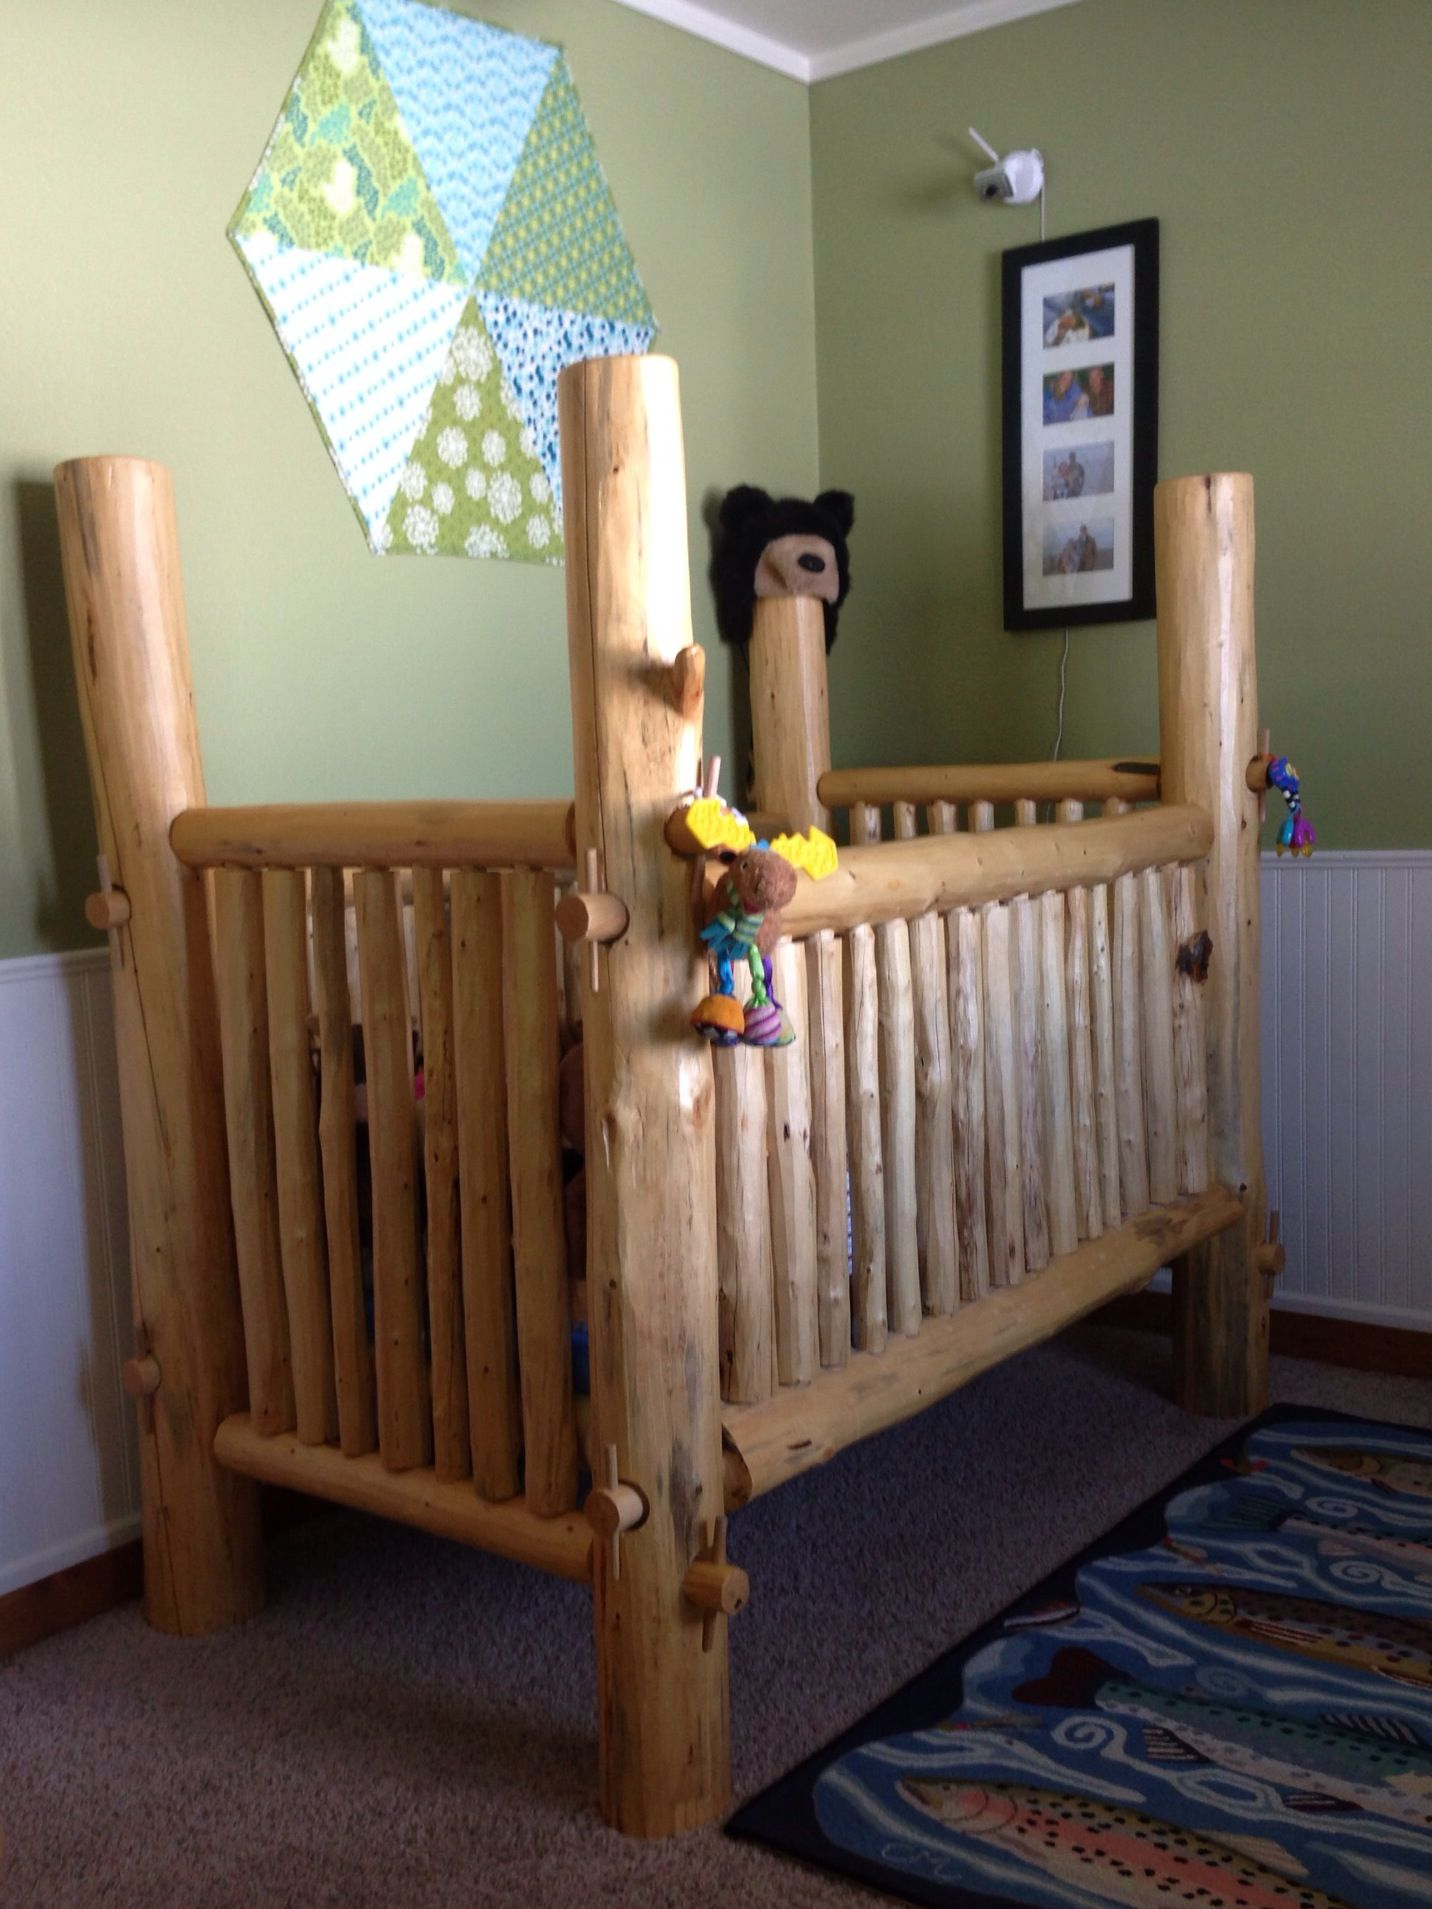 Jameson panel crib for sale - Our Handmade Lodgepole Pine Crib My Husband And I Found Instructions Online At Http